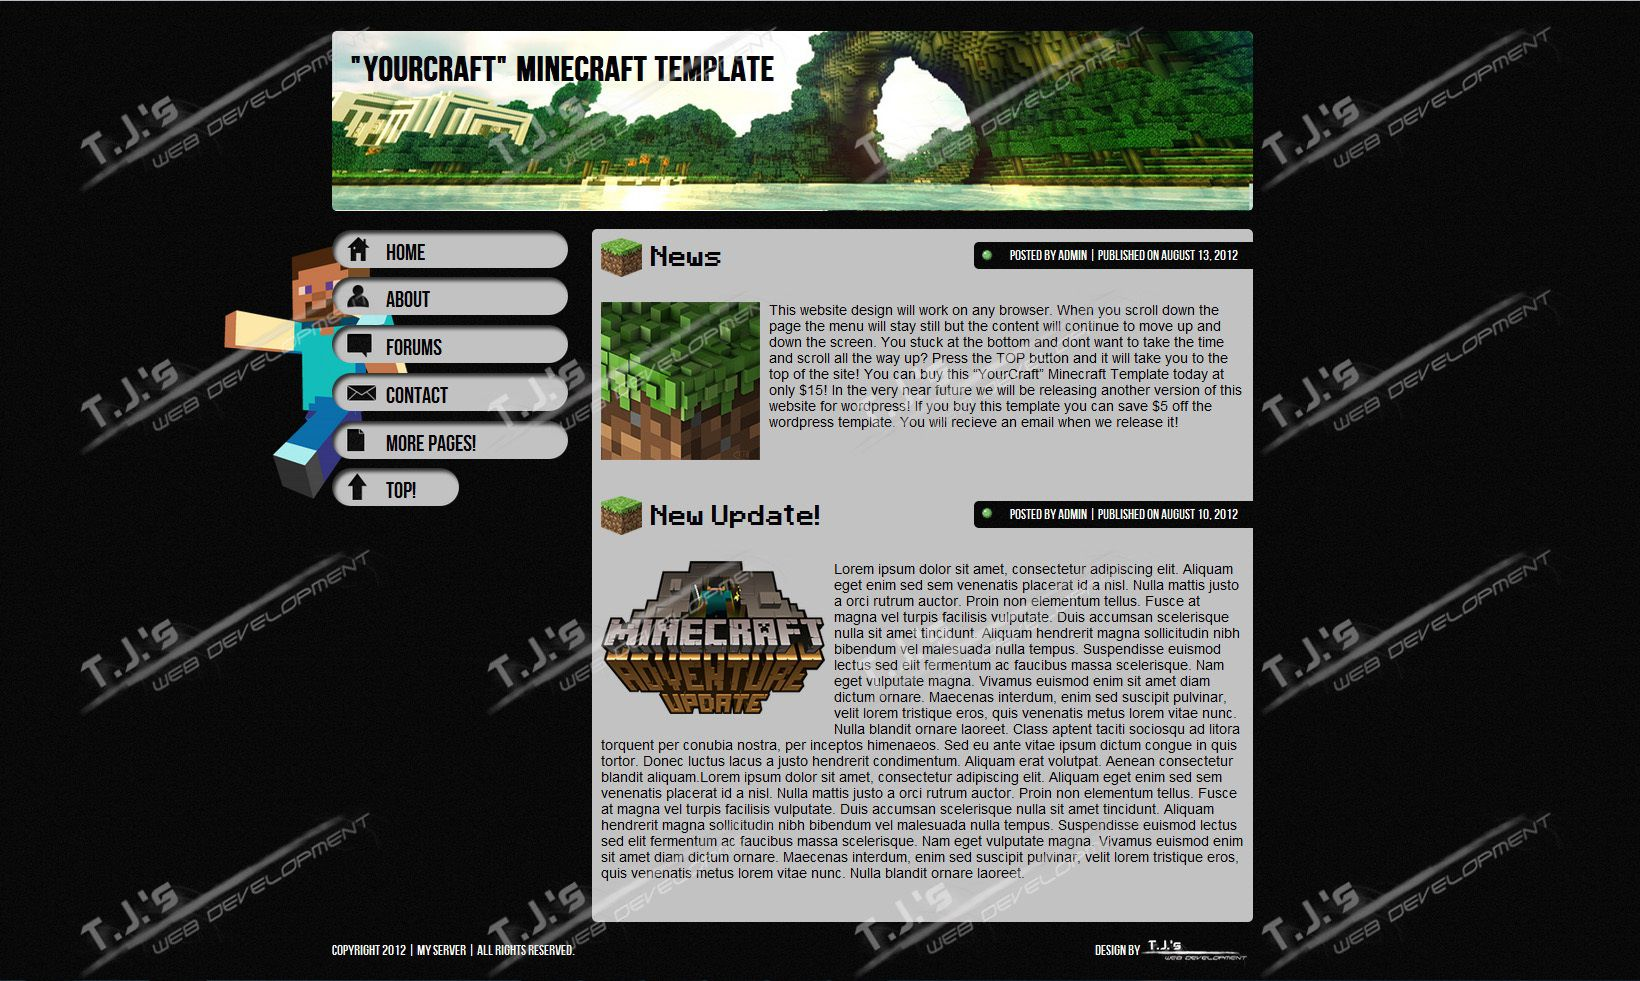 004 Simple Minecraft Website Template Html Free Download Concept Full